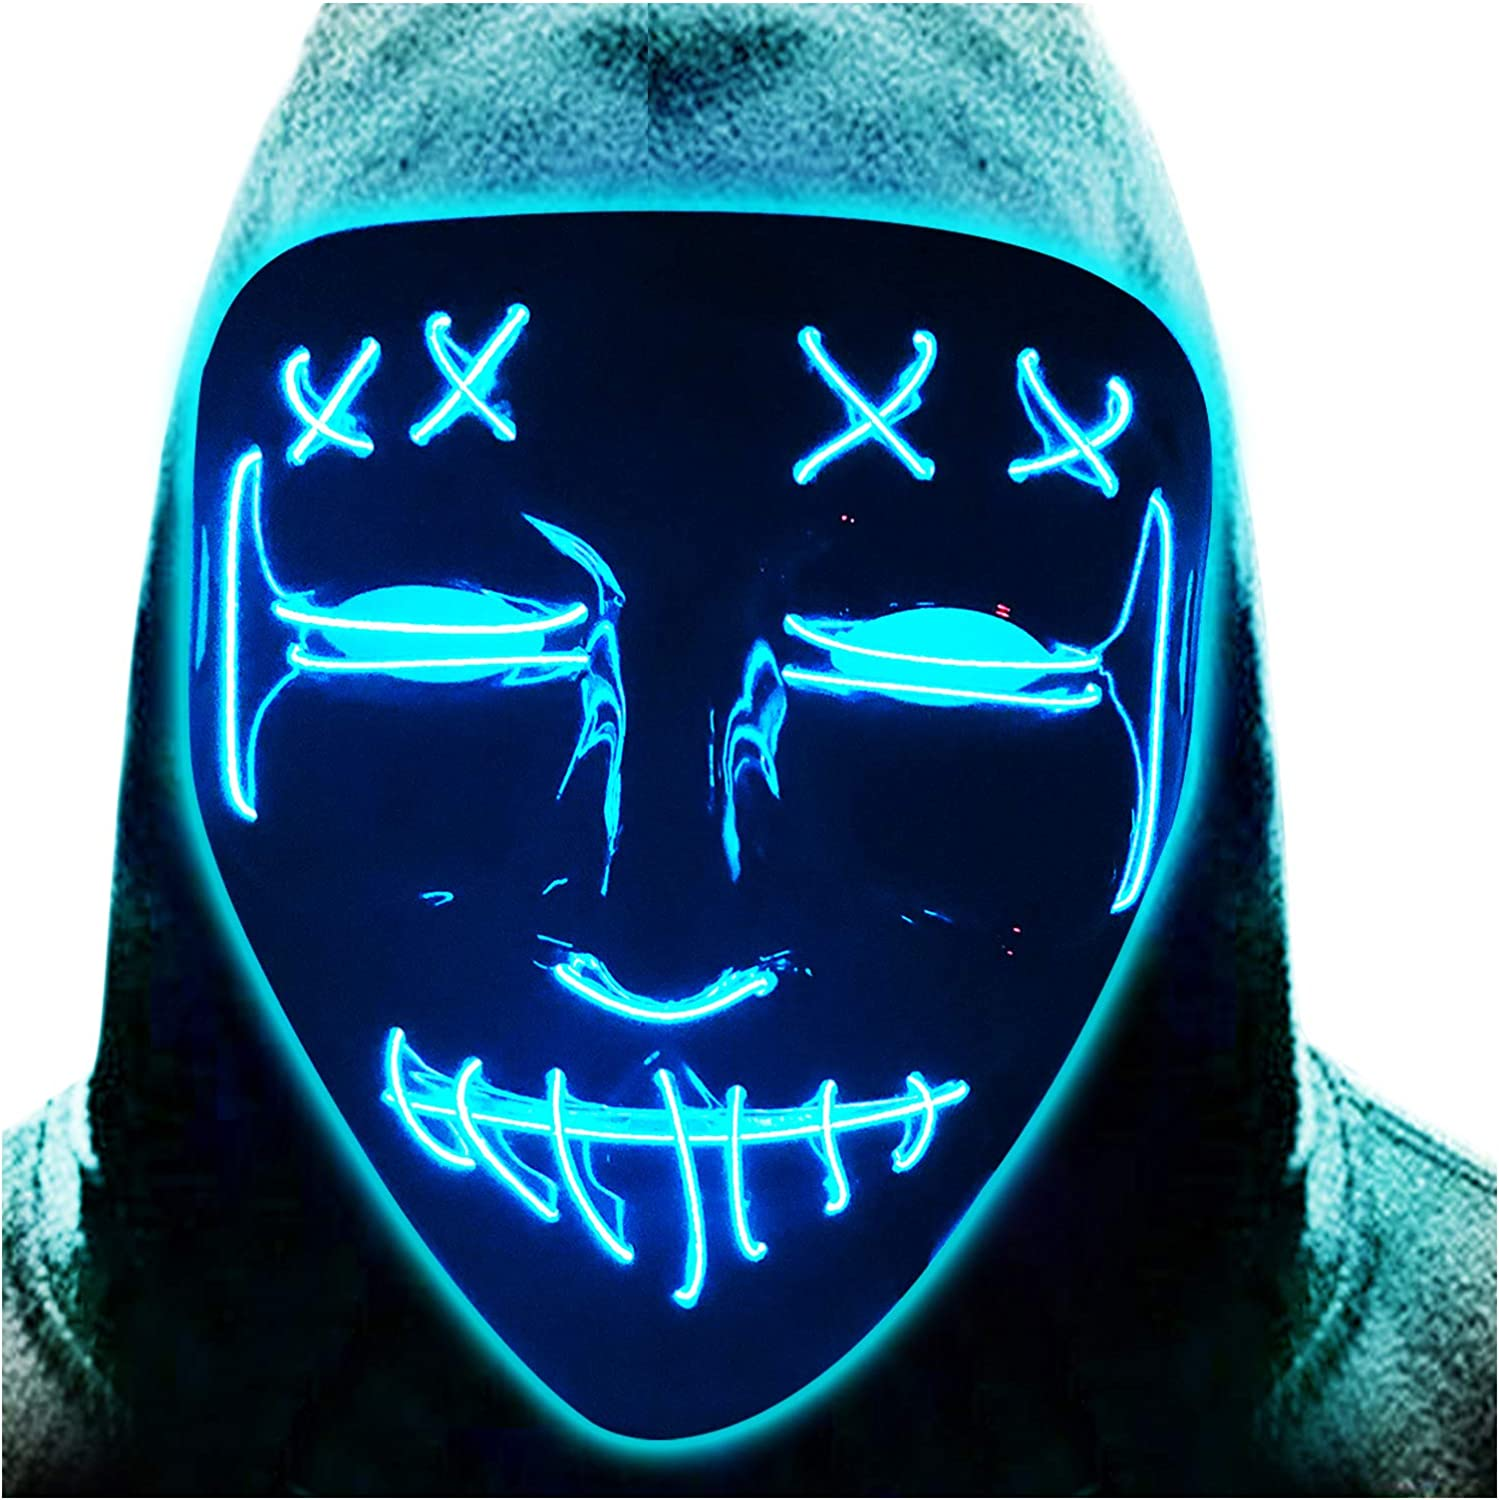 Halloween LED Mask Rare Light Up Scary Costume EL R Cosplay Max 81% OFF Wire